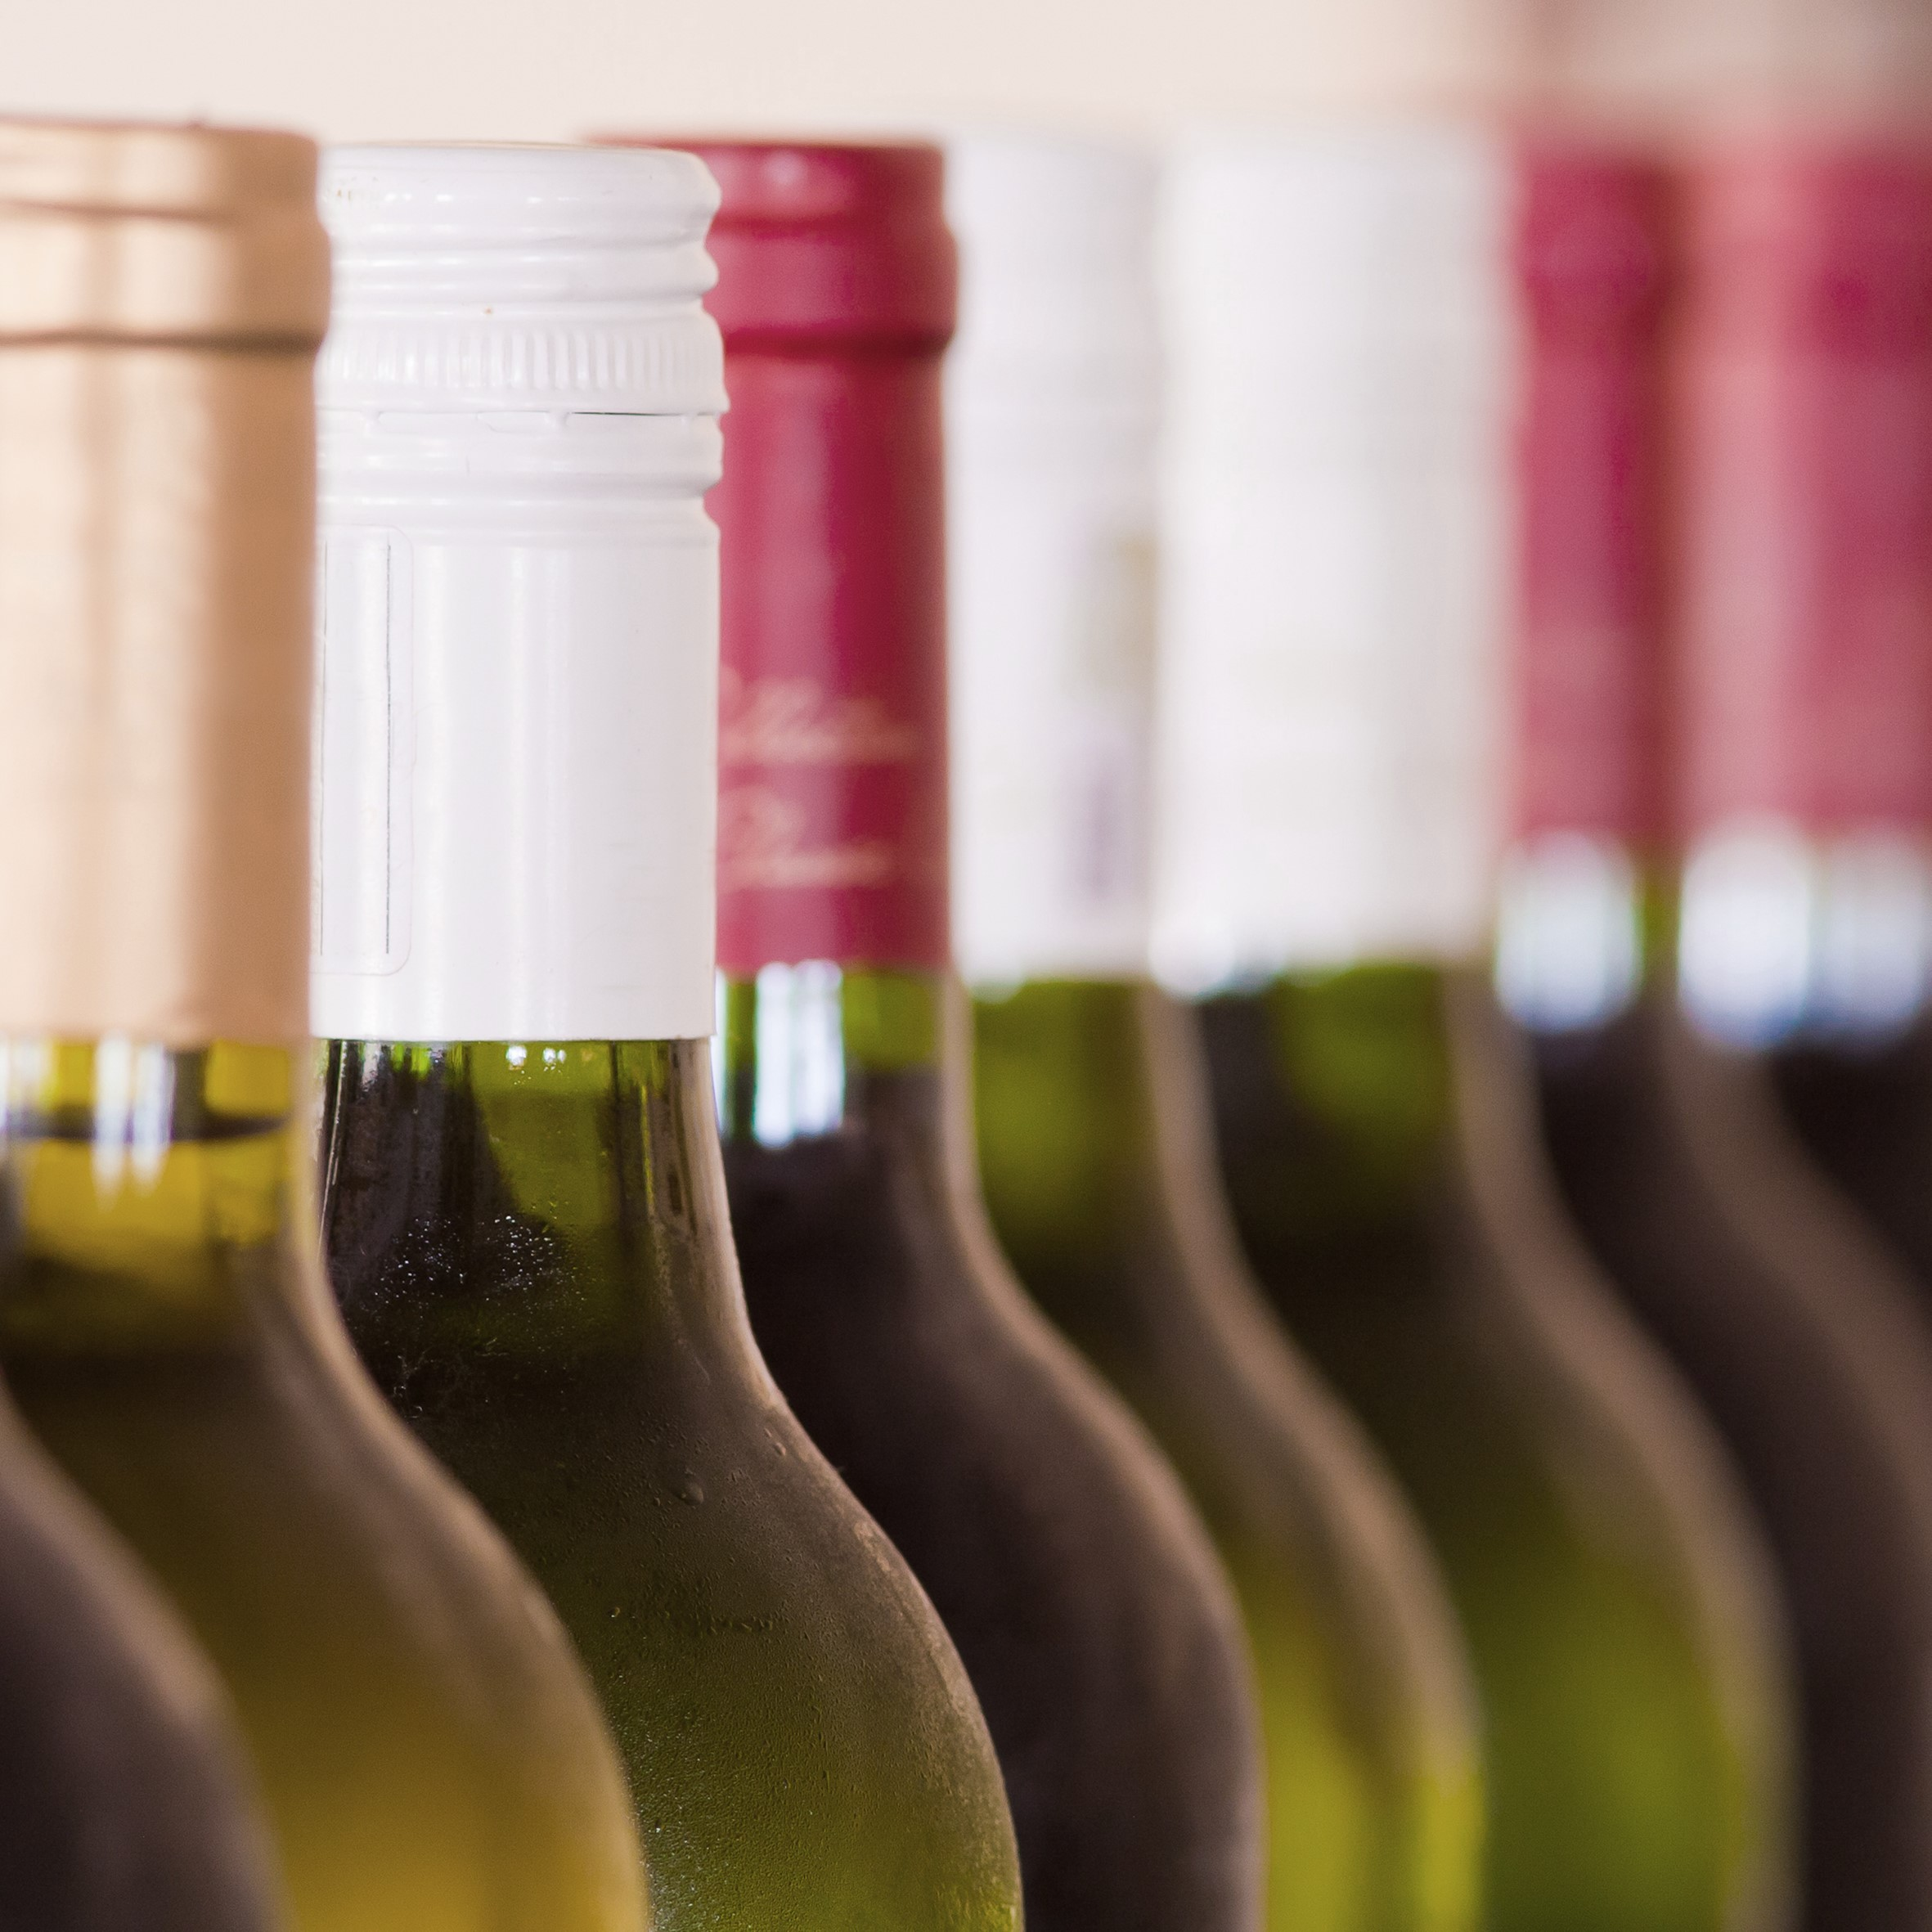 UK Packaging - Global wine trend predictions for 2020 – how did we do?